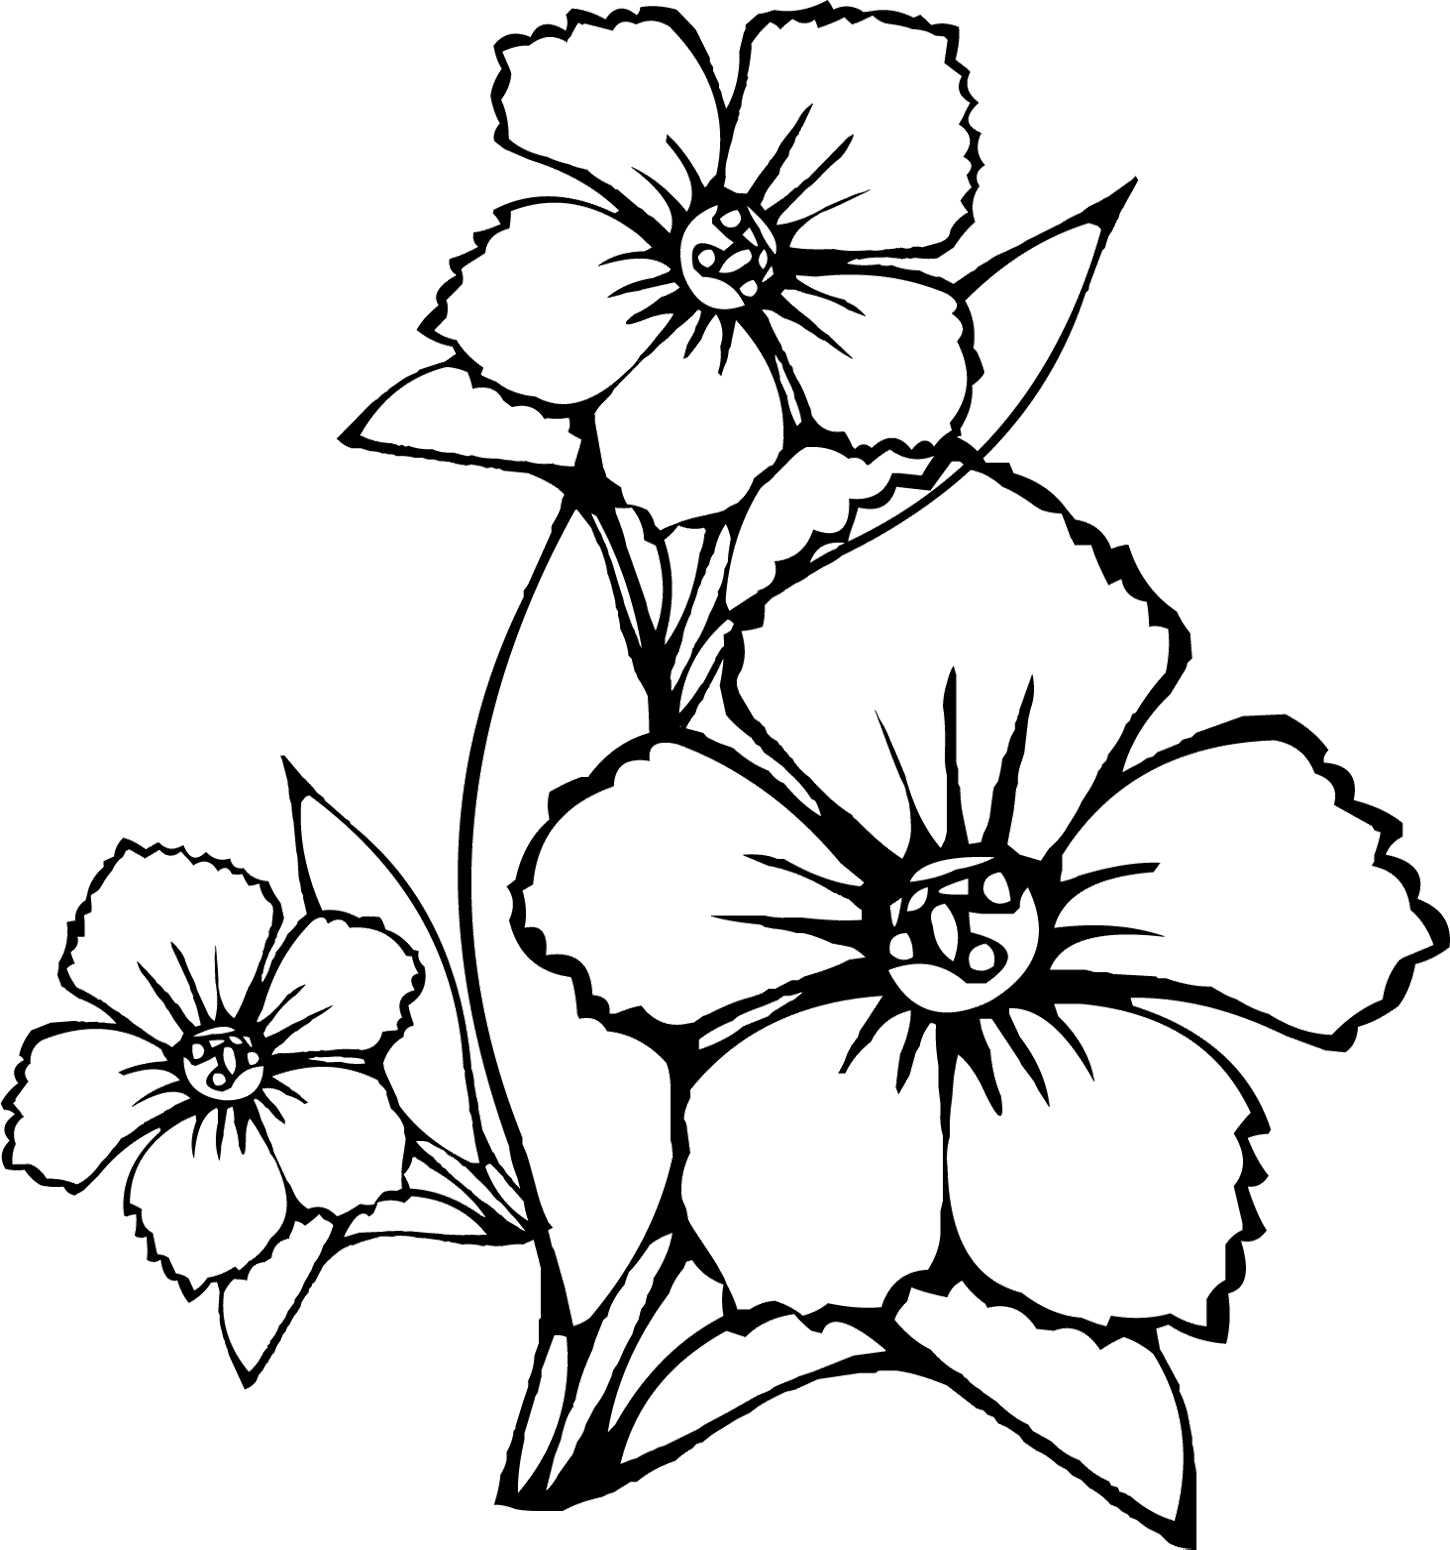 1450x1550 Photos Kaner Flower In Pencil Easy,